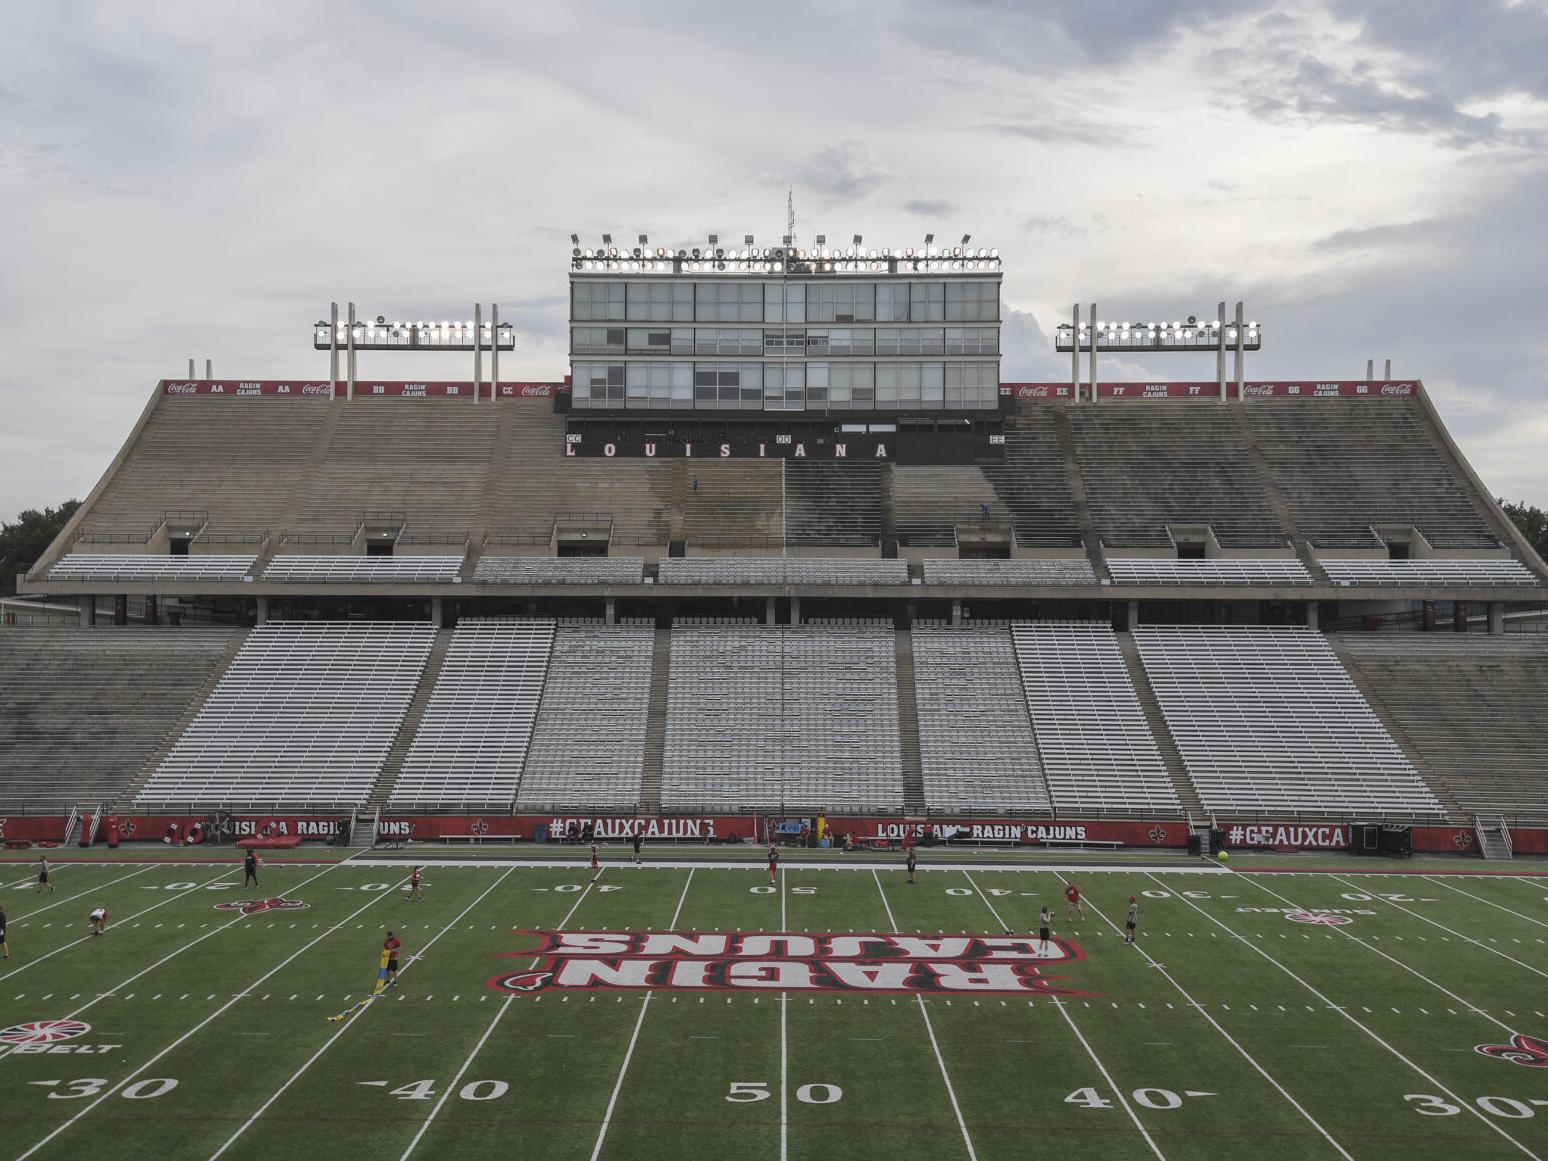 Canceled Ul Home Football Games Could Cost The Lafayette Economy Millions Business Theadvocate Com